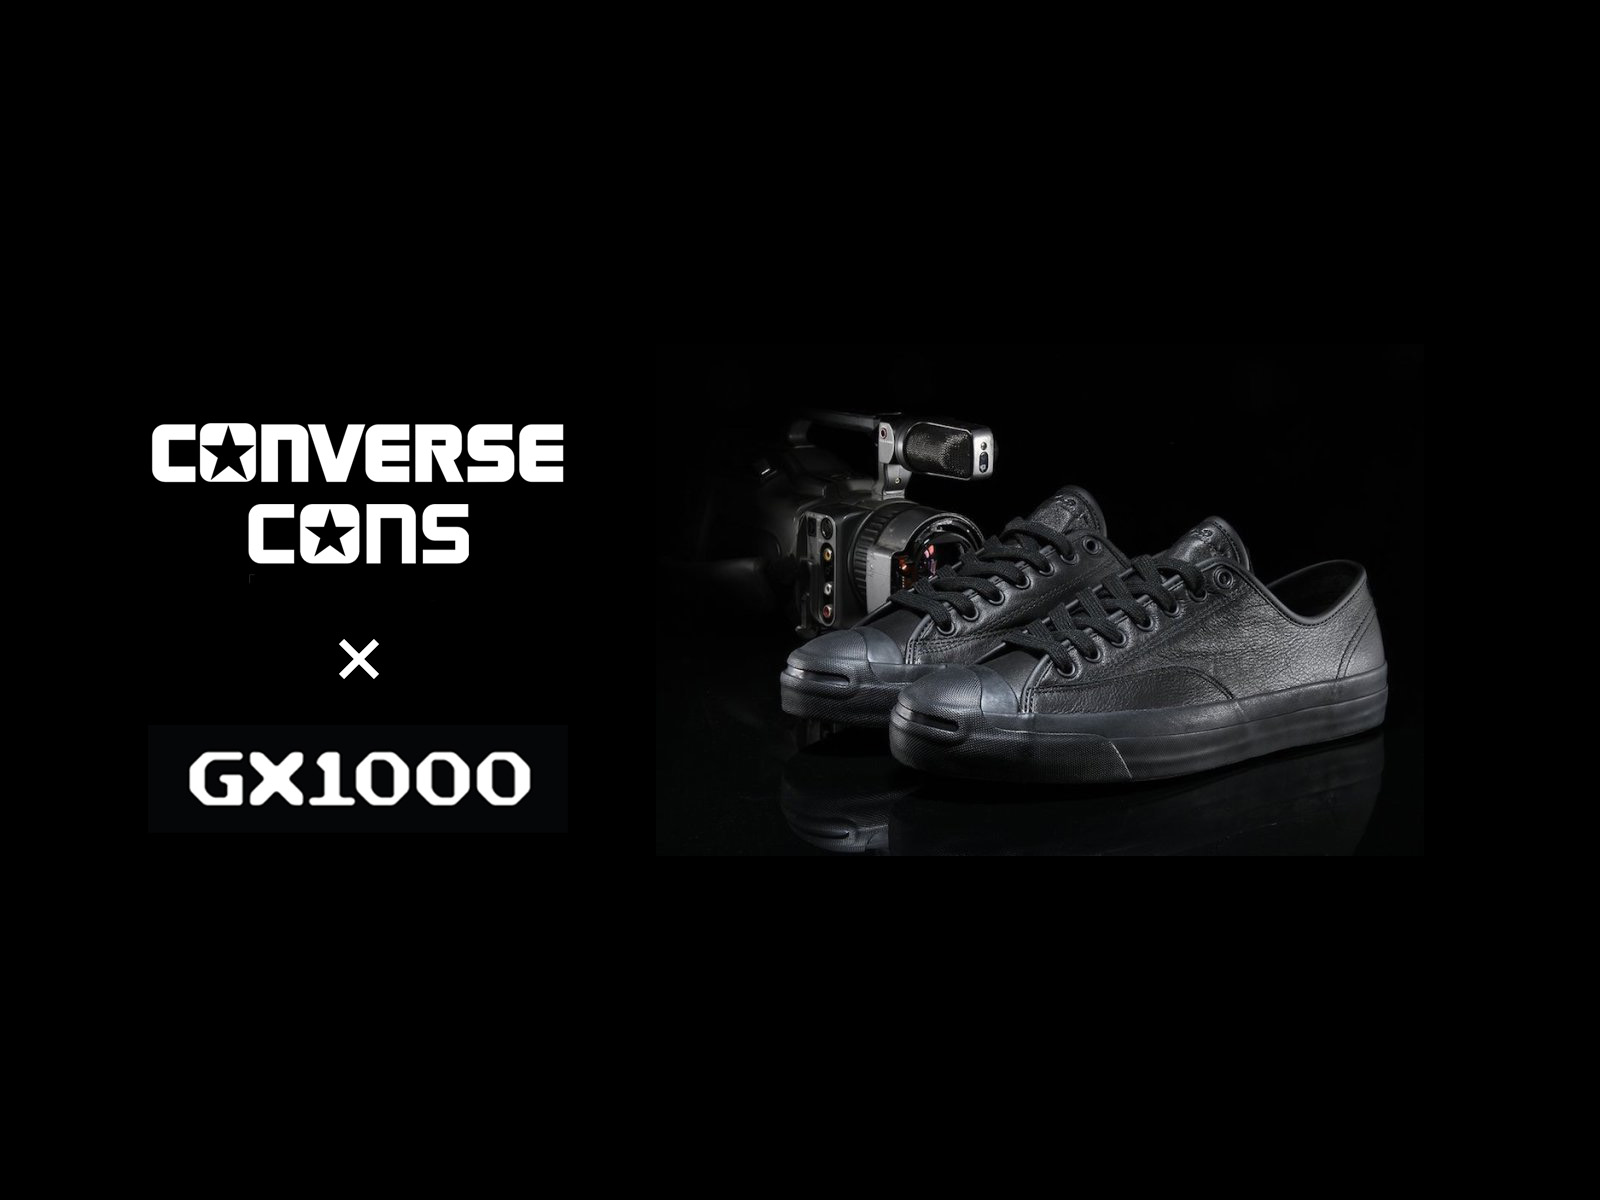 CONVERSE CONS × GX1000 – Jack Parcell Pro 近日入荷